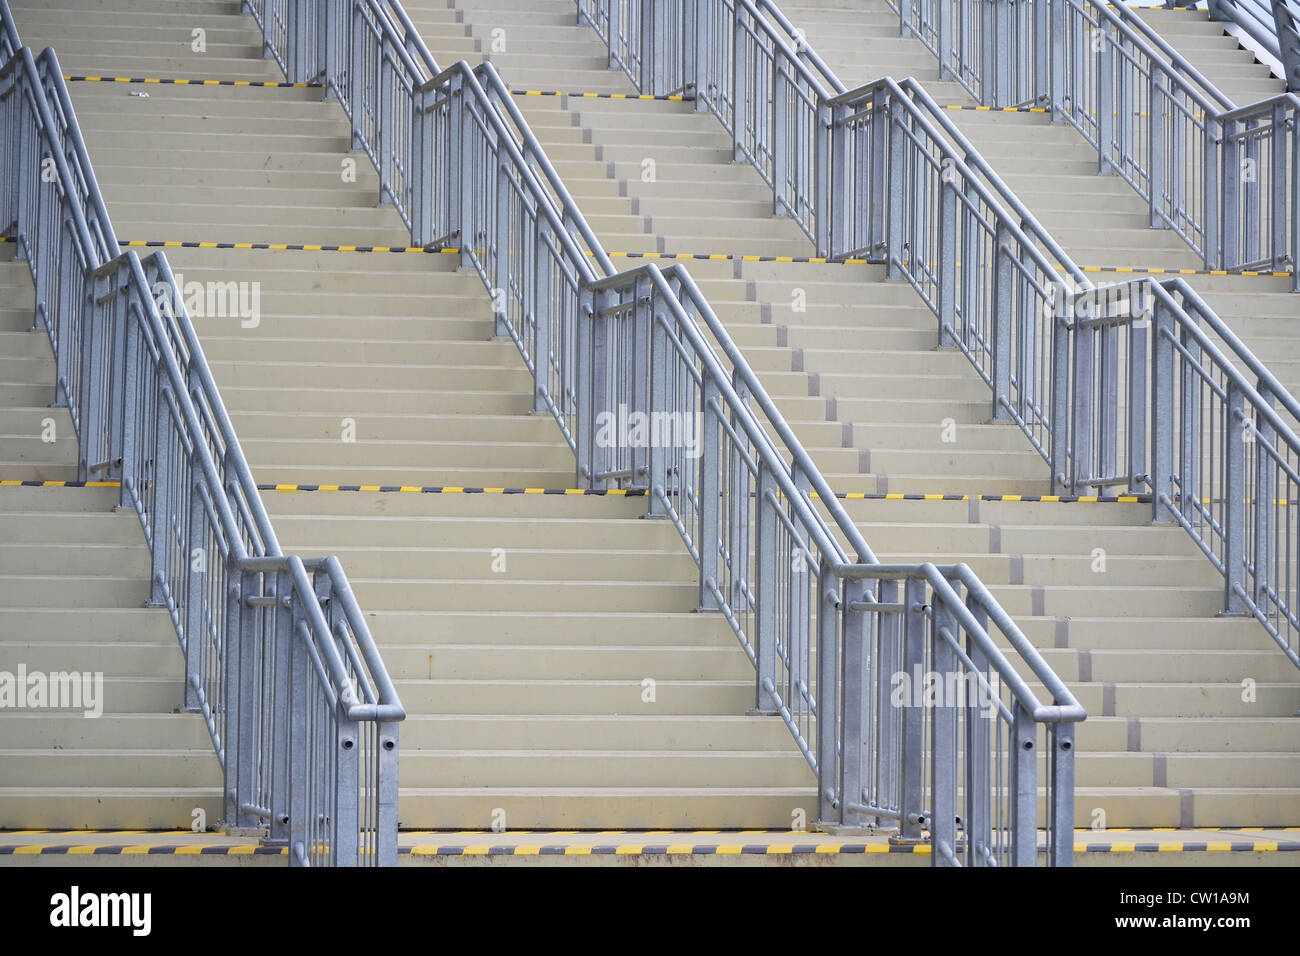 Stairs in public space - Stock Image